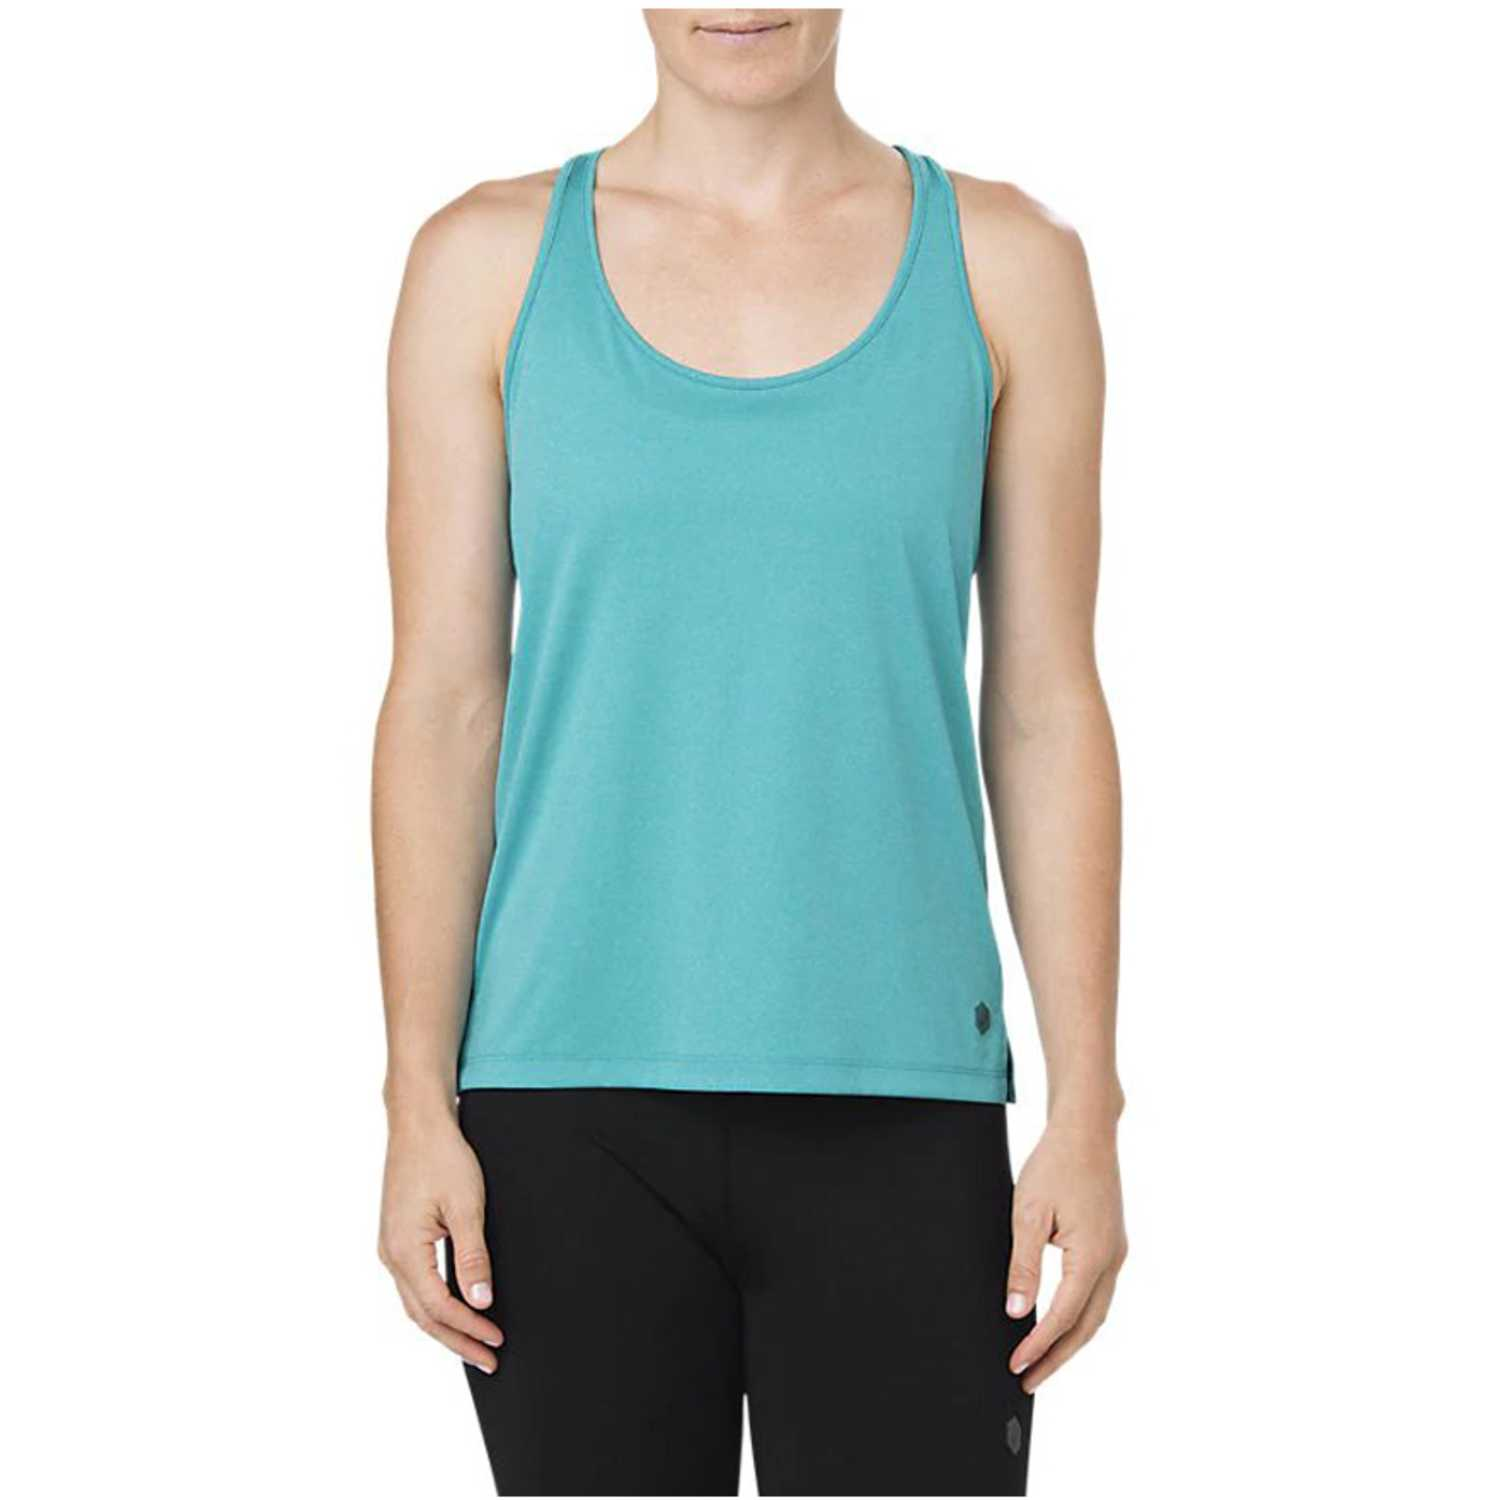 Asics loose tank  lake blue heather Turquesa Tank Tops